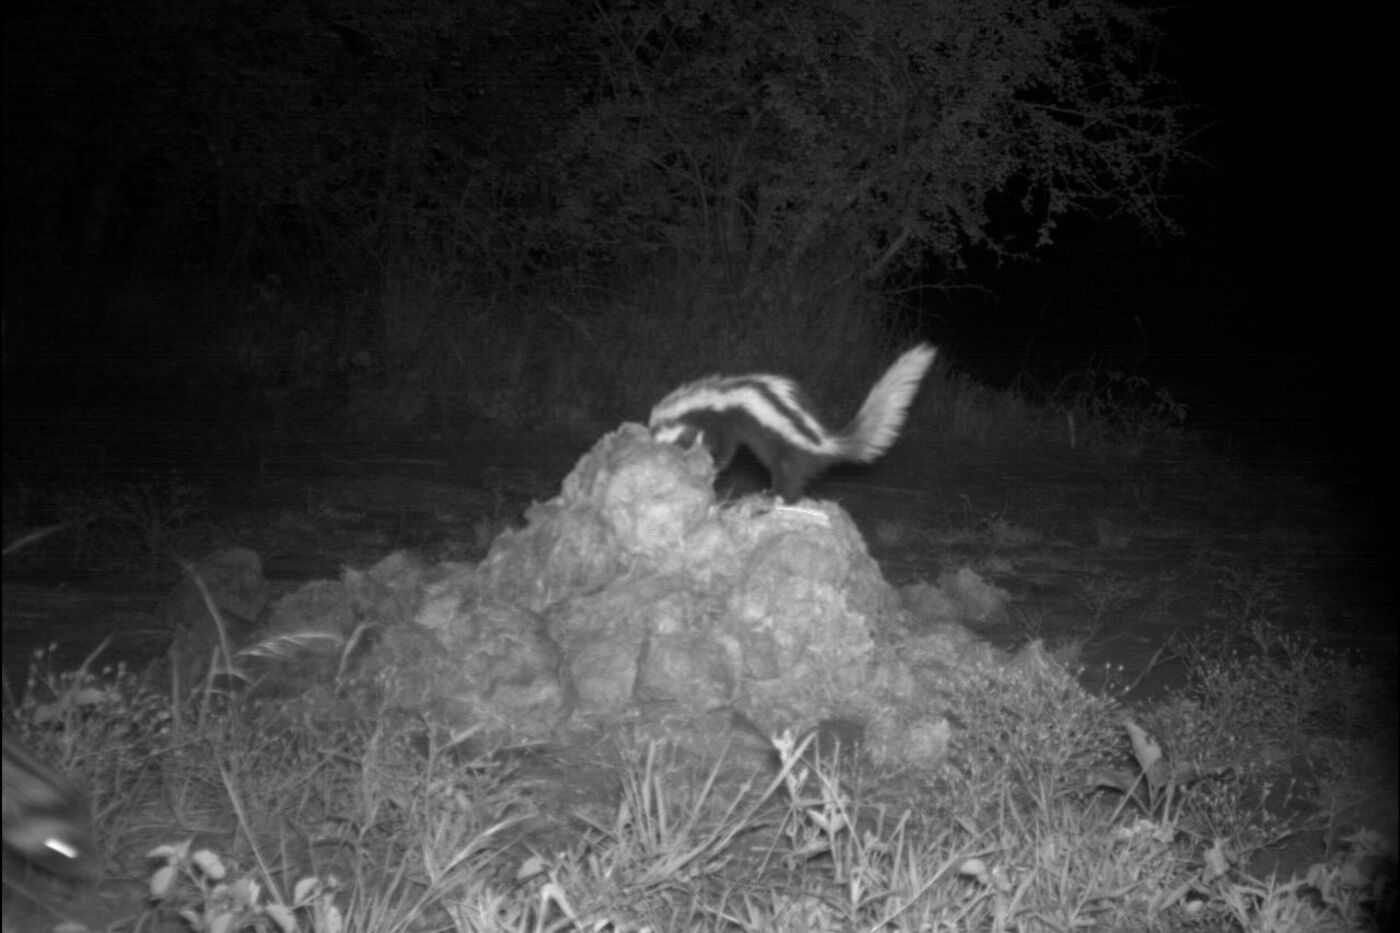 An image of a zorilla digging captured on a wildlife camera